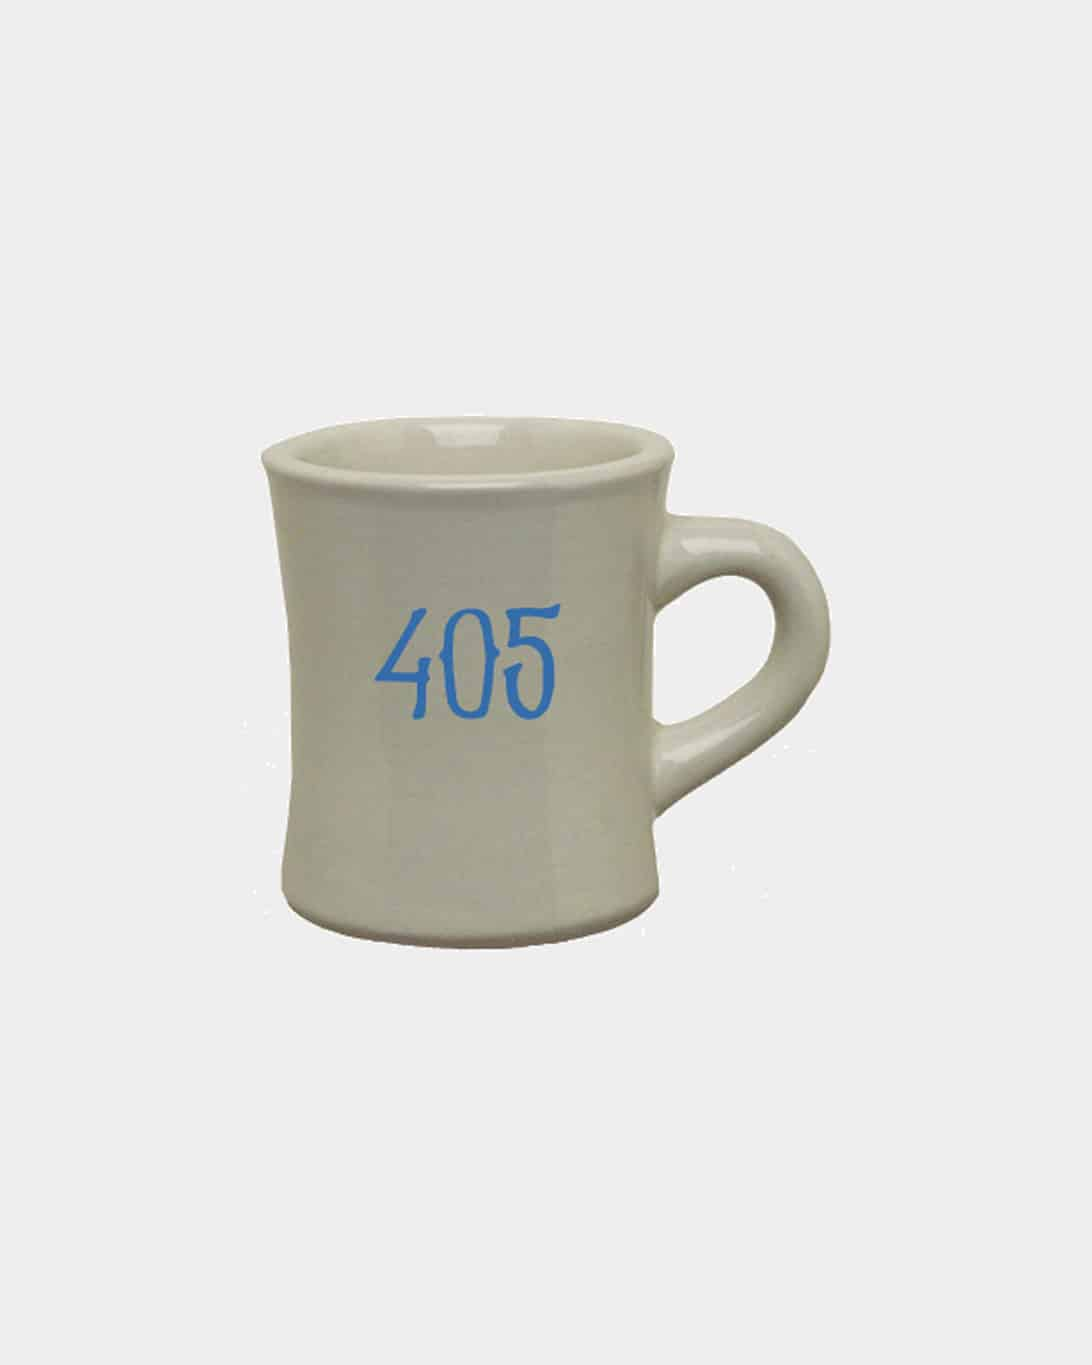 A military mug with 405 printed on it in blue.